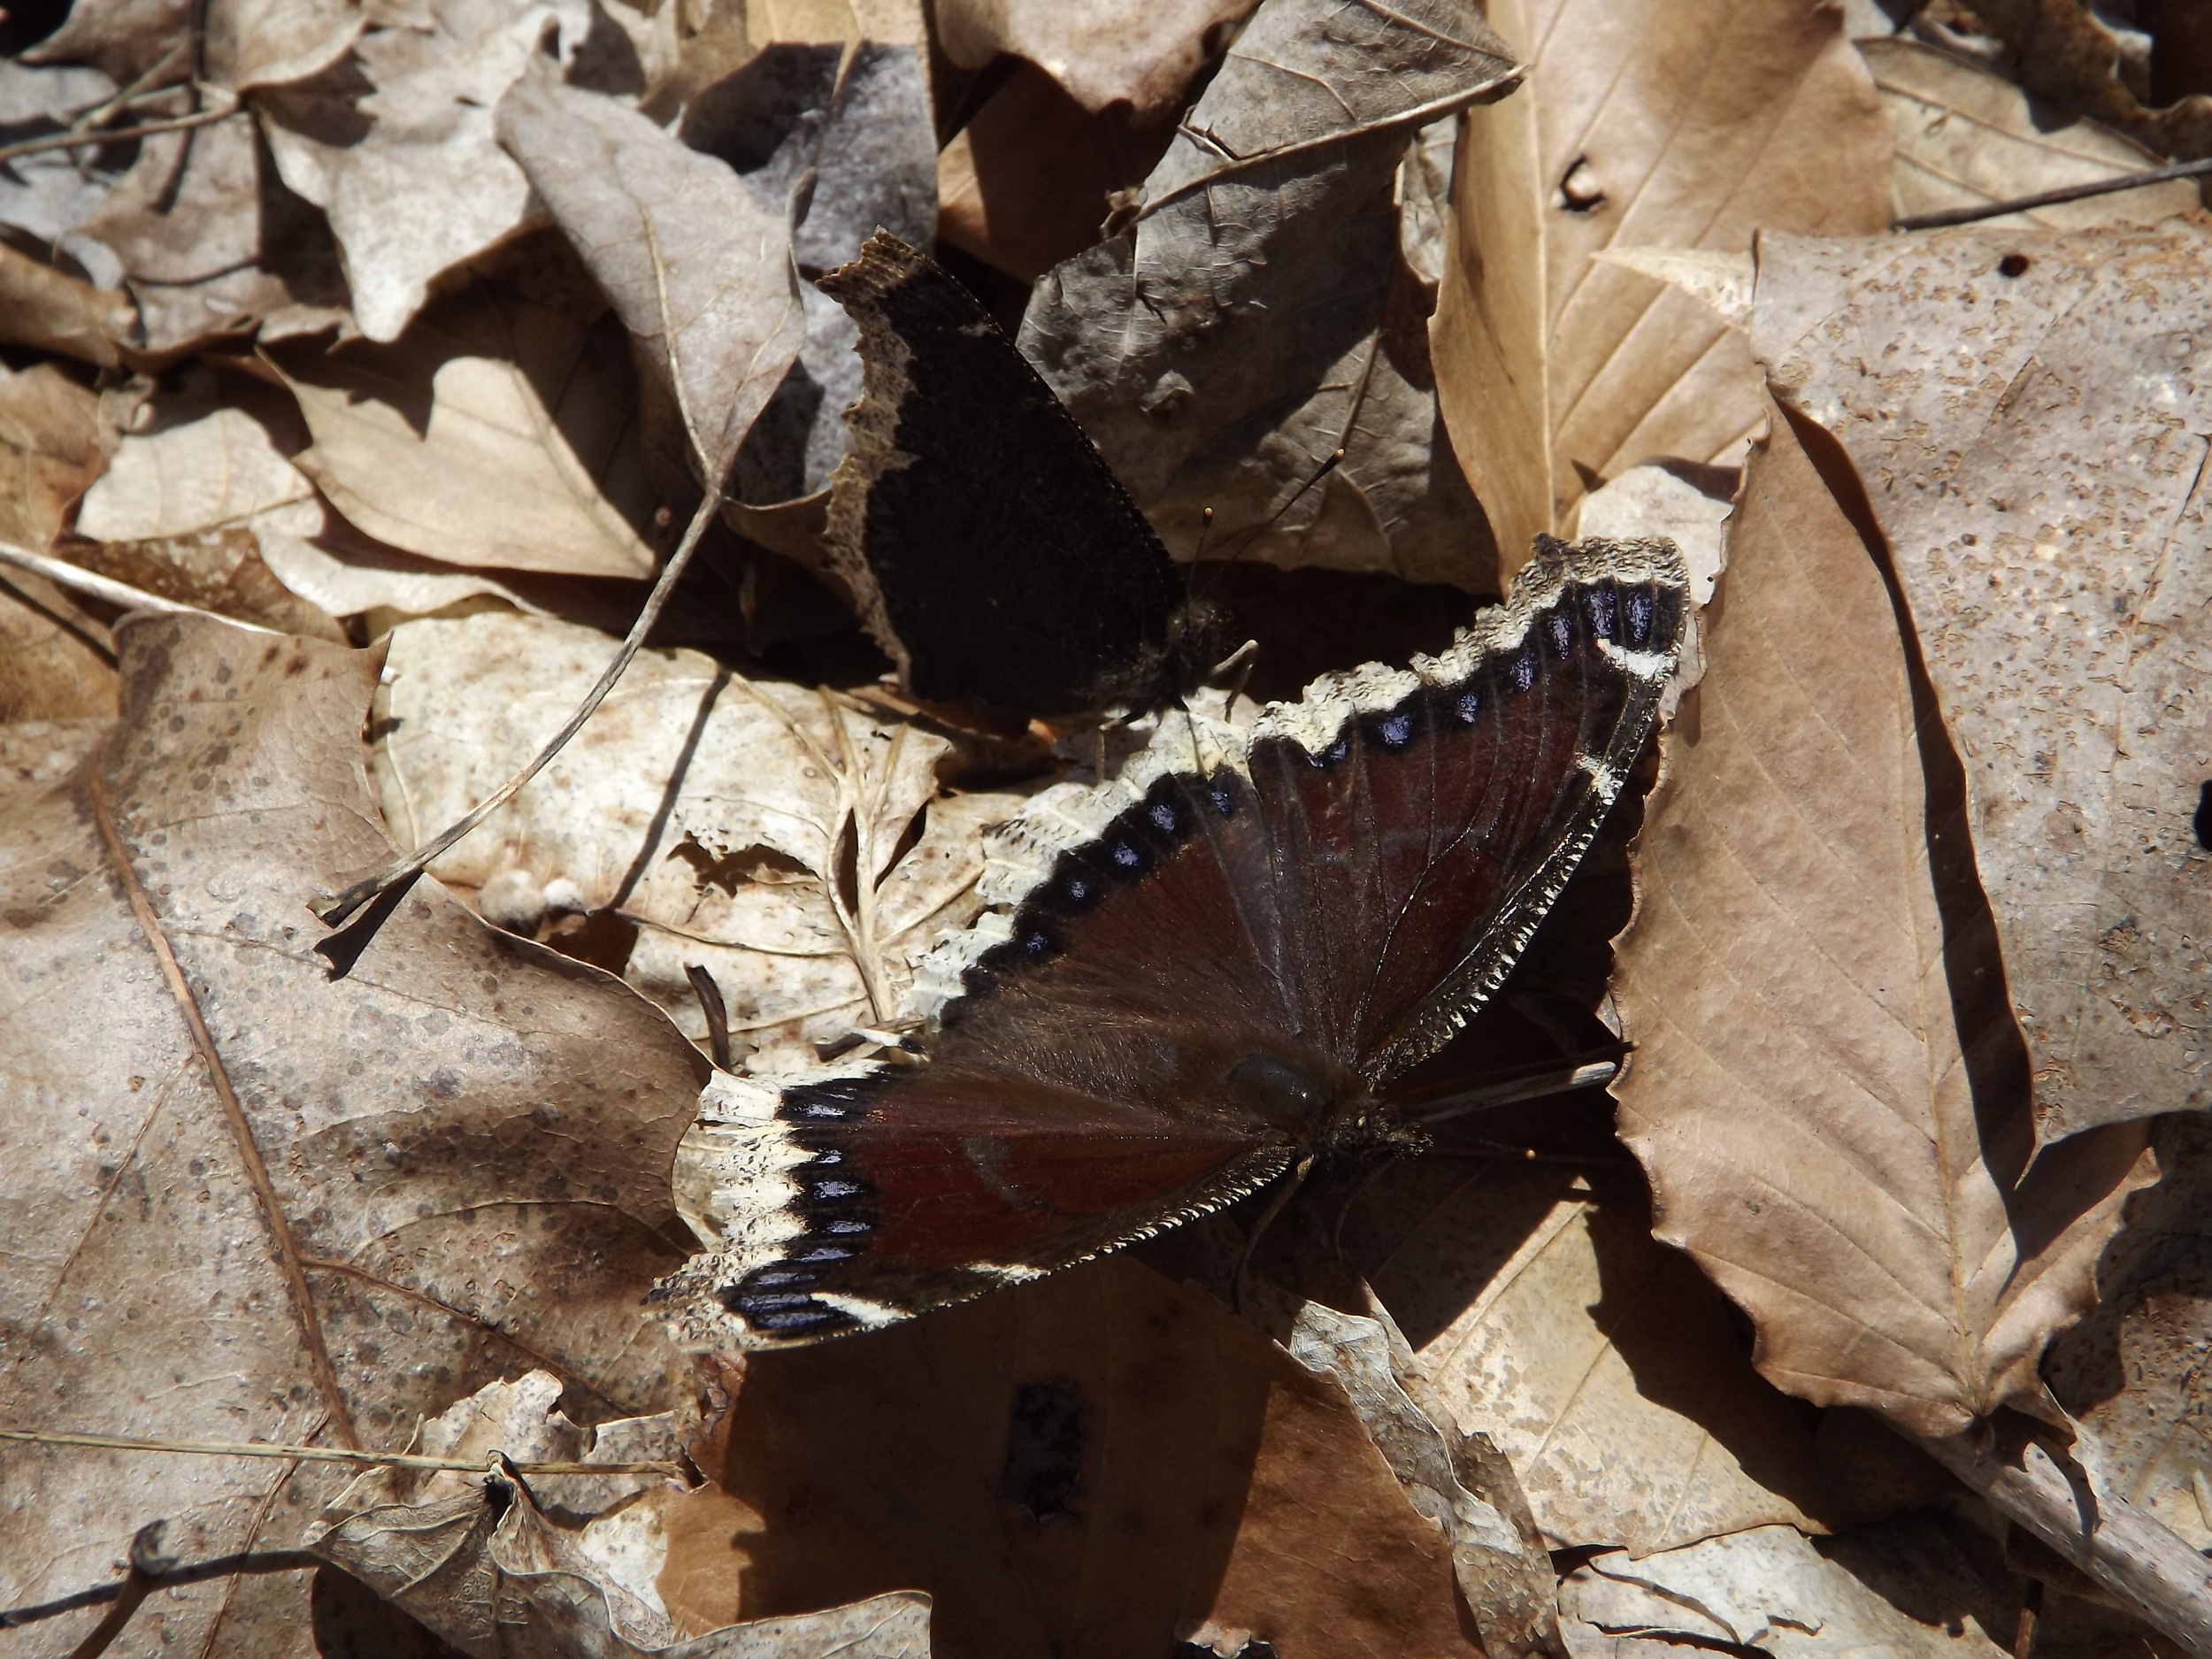 Mourning Cloak Butterfly ( Nymphalis antiopa ) - This is my first picture of Mourning Cloak butterflies. I just happened spot the pair sunning themselves on the leaves and was lucky enough to get a photo when the one spread its wings. The other is in the shadows with its wings folded in an upright position.